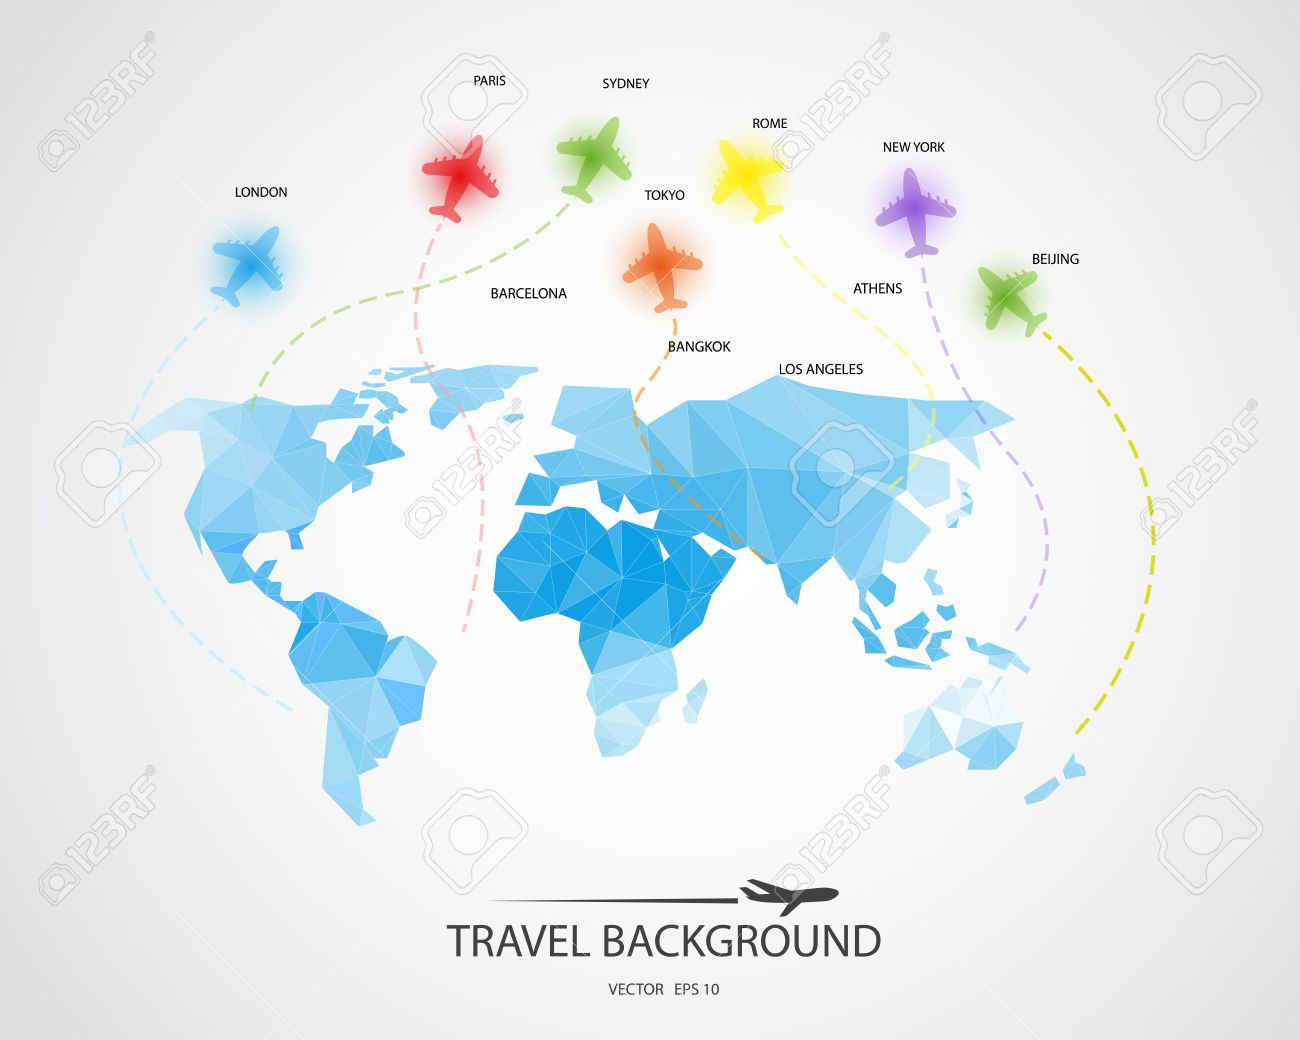 Abstract Map Of The World.Travel Around The World Background Abstract Map Tourism Concept